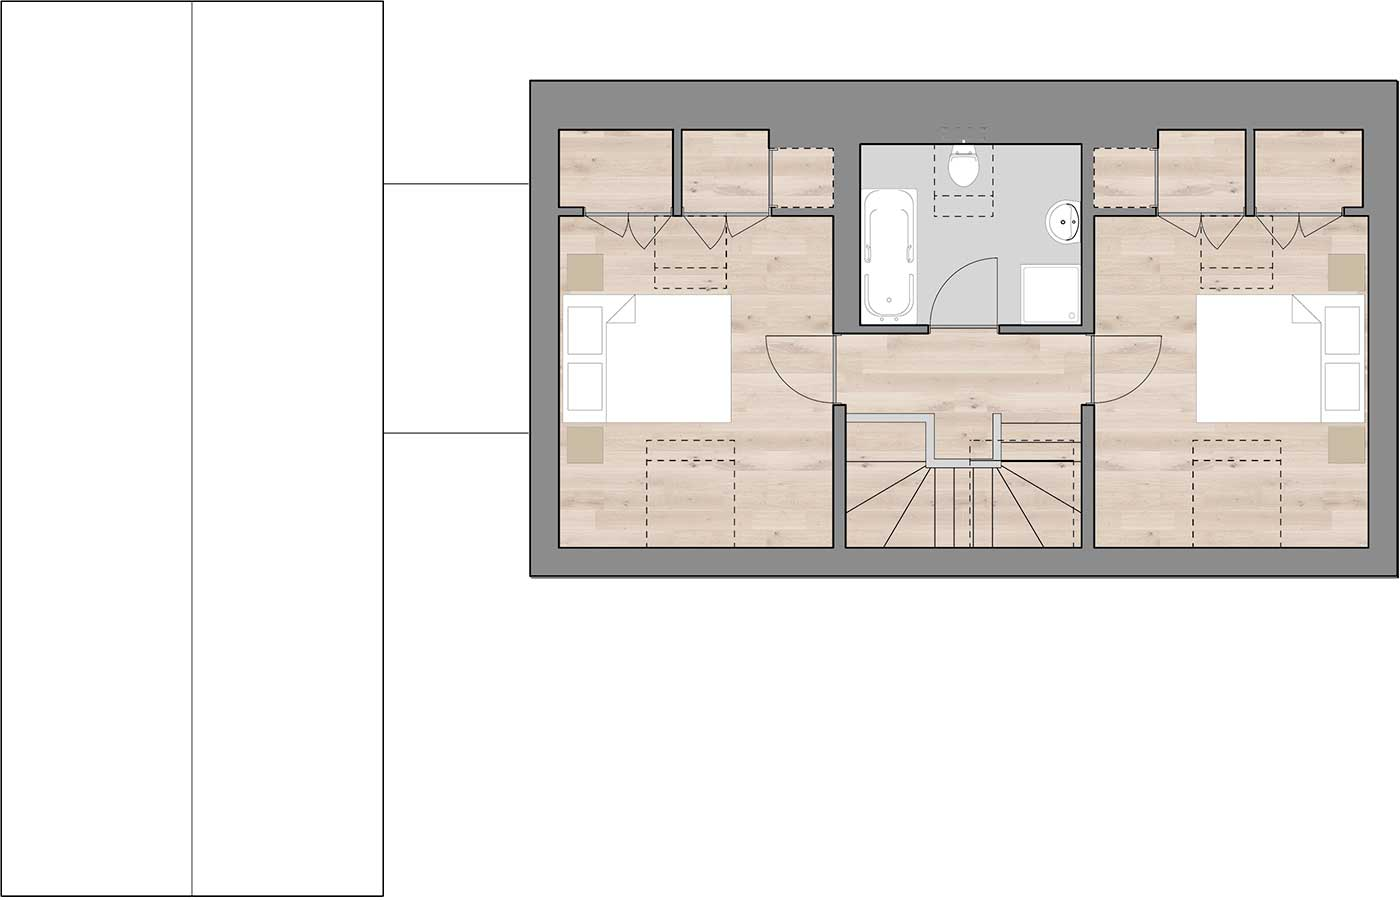 R4 First Floor Rural House Design